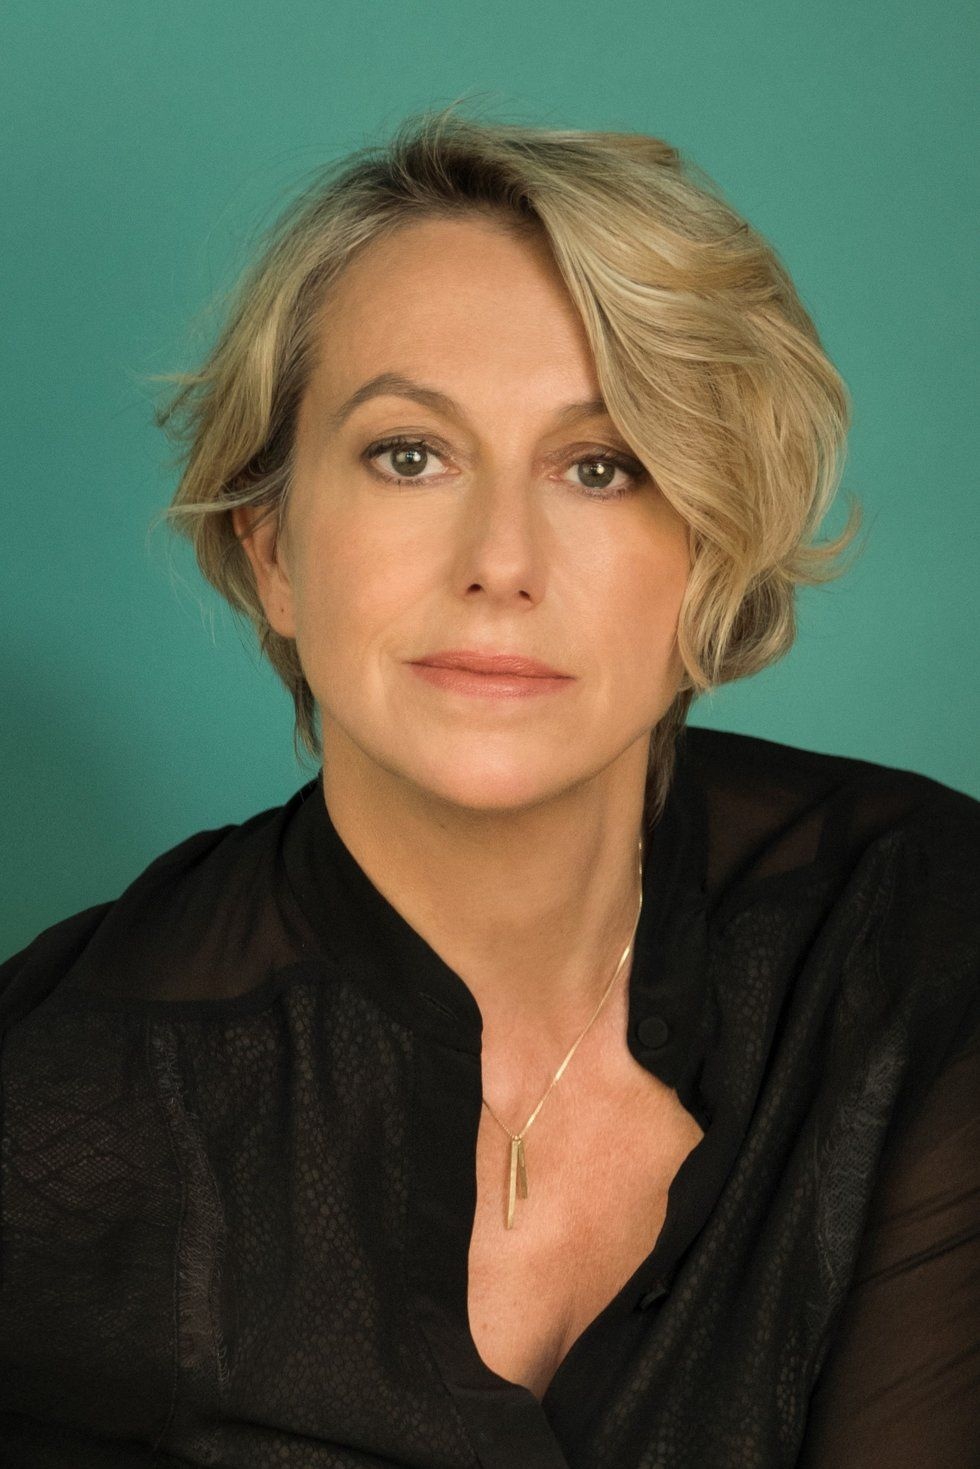 A headshot of page. She has short blond hair and a black shirt and is in front of a teal background.